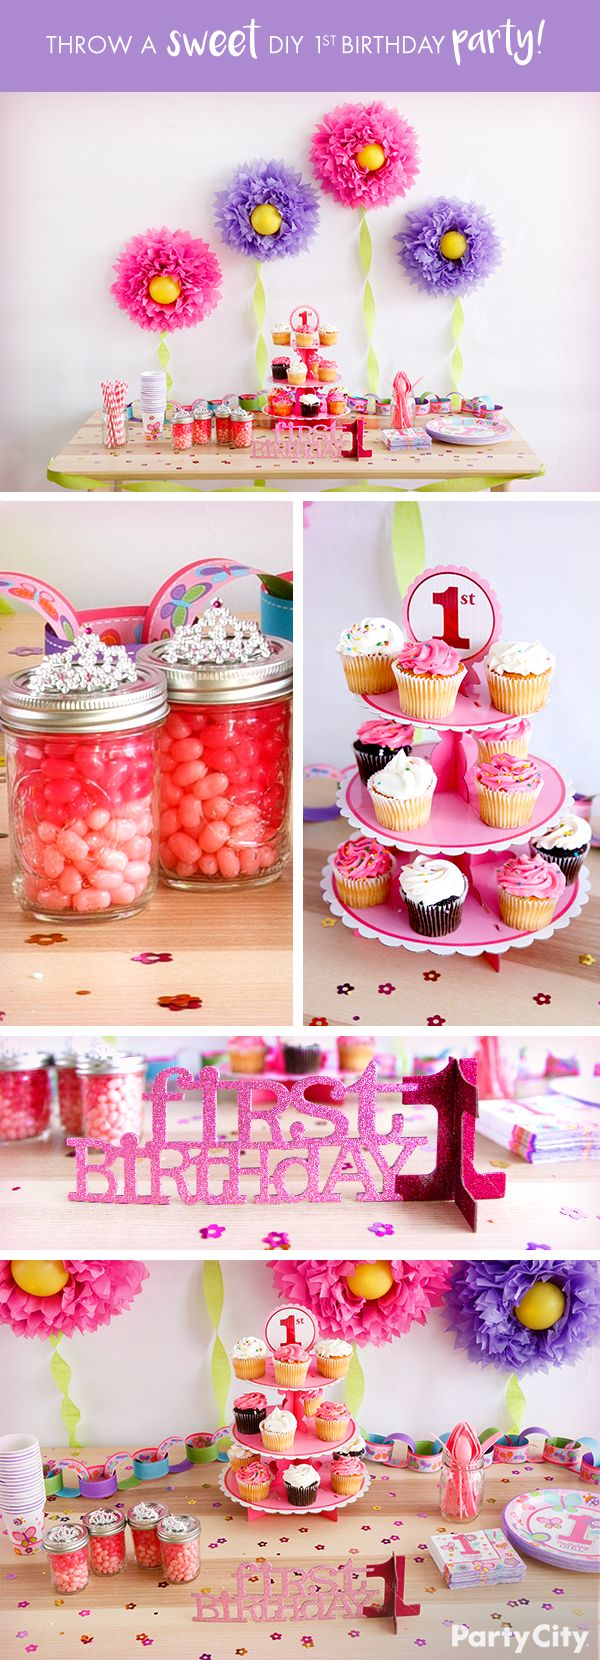 Create a sweet scene for your little princess's 1st birthday! First, make wall décor using fluffy decorations, balloons and streamers. Then place cupcakes on a stand and arrange straws and cutlery in mason jars. Place a birthday centerpiece at the front of the table. Add a finishing touch with garland and confetti. Assemble favors using a mason jar filled with jelly beans, then top with a tiara. Watch the look on your little girl's face when she sees the adorable décor!